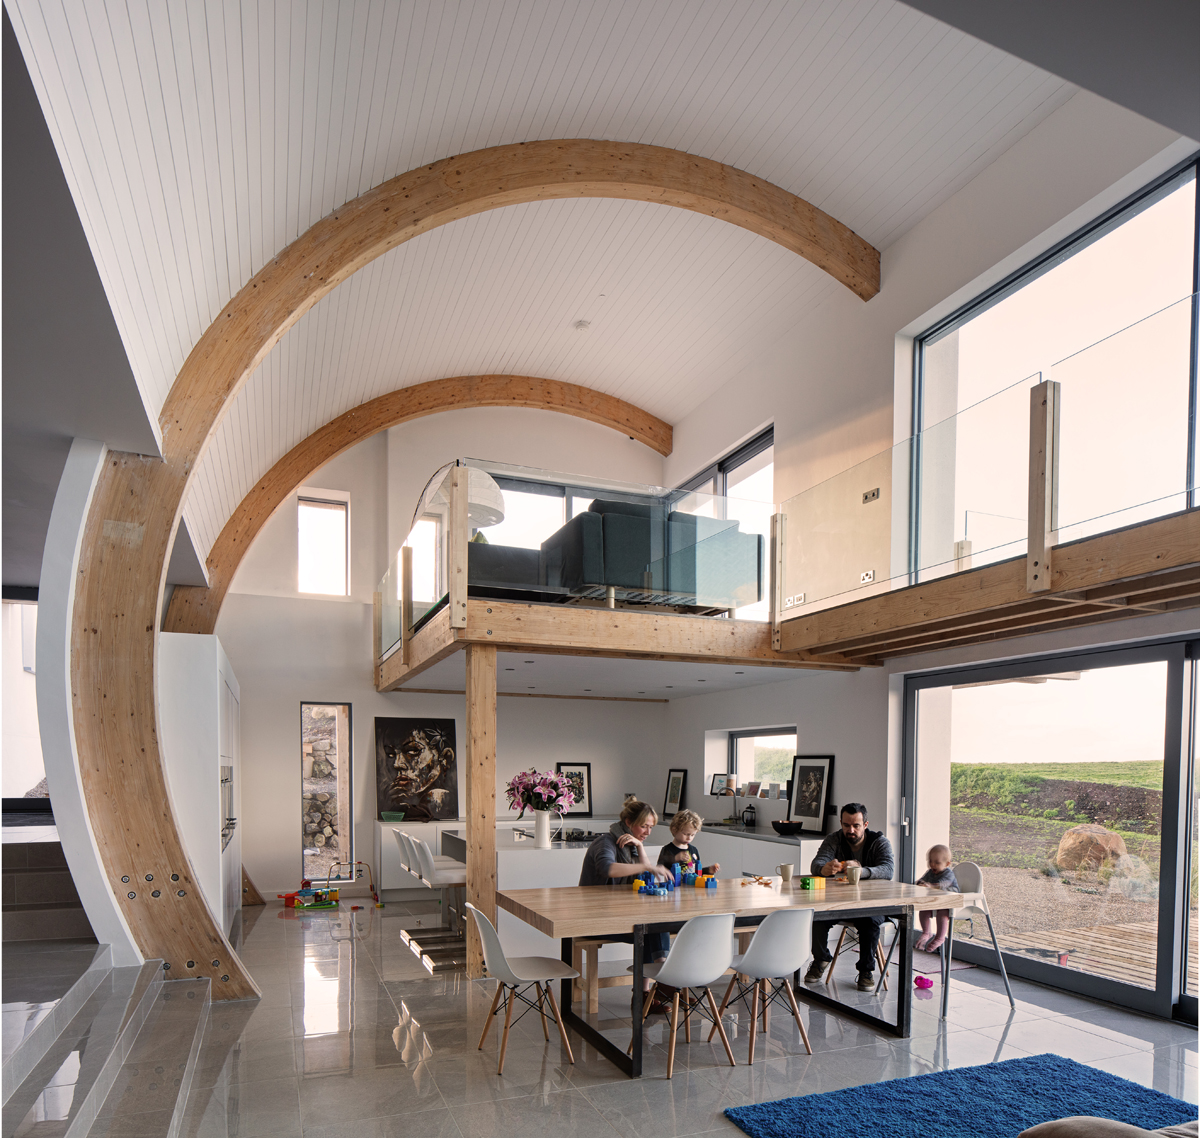 2020 architect 39 s 39 grand designs 39 project ballymagarry house for Grand designs interior